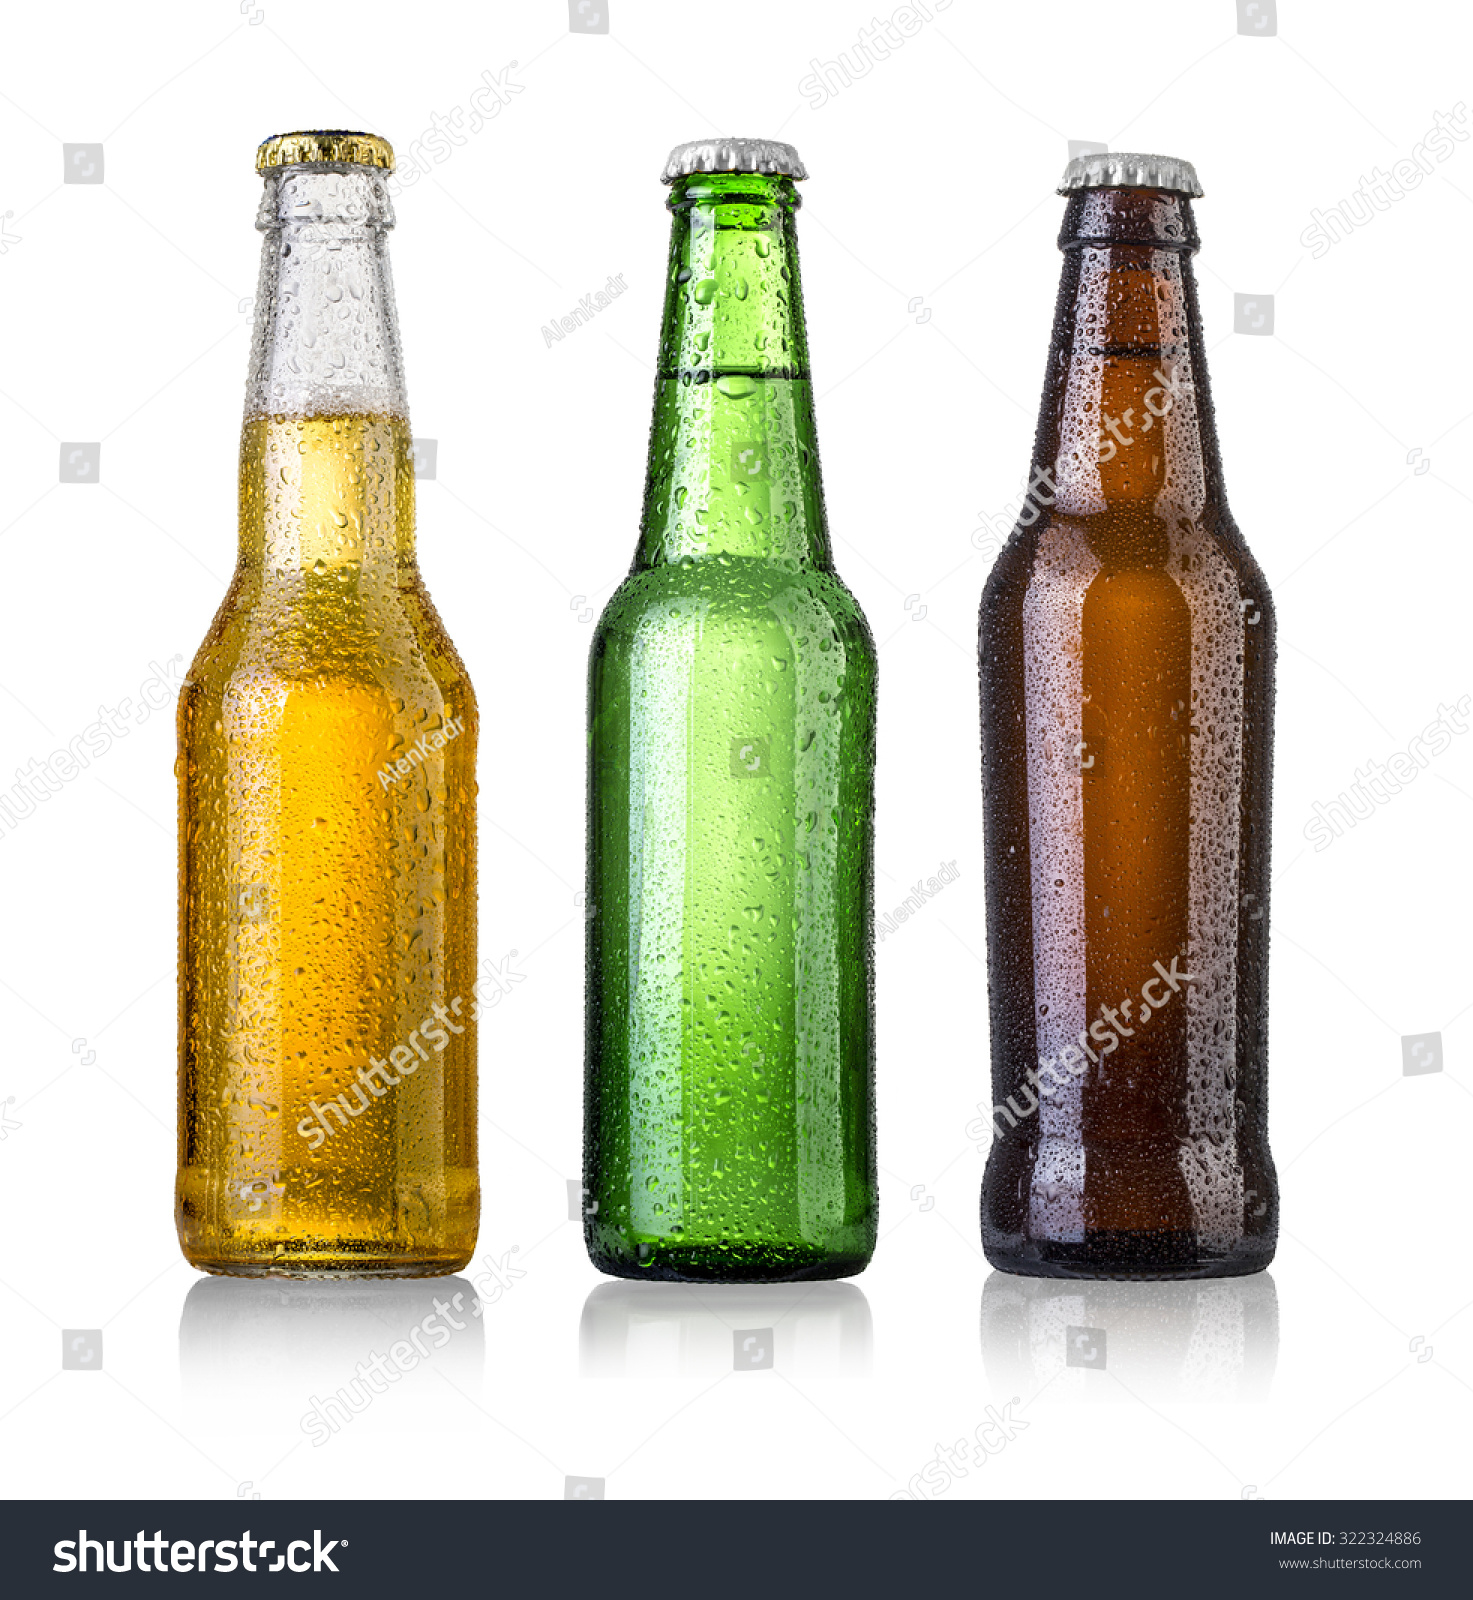 set of Beer bottles with water drops on white background.Five separate photos merged together. #322324886